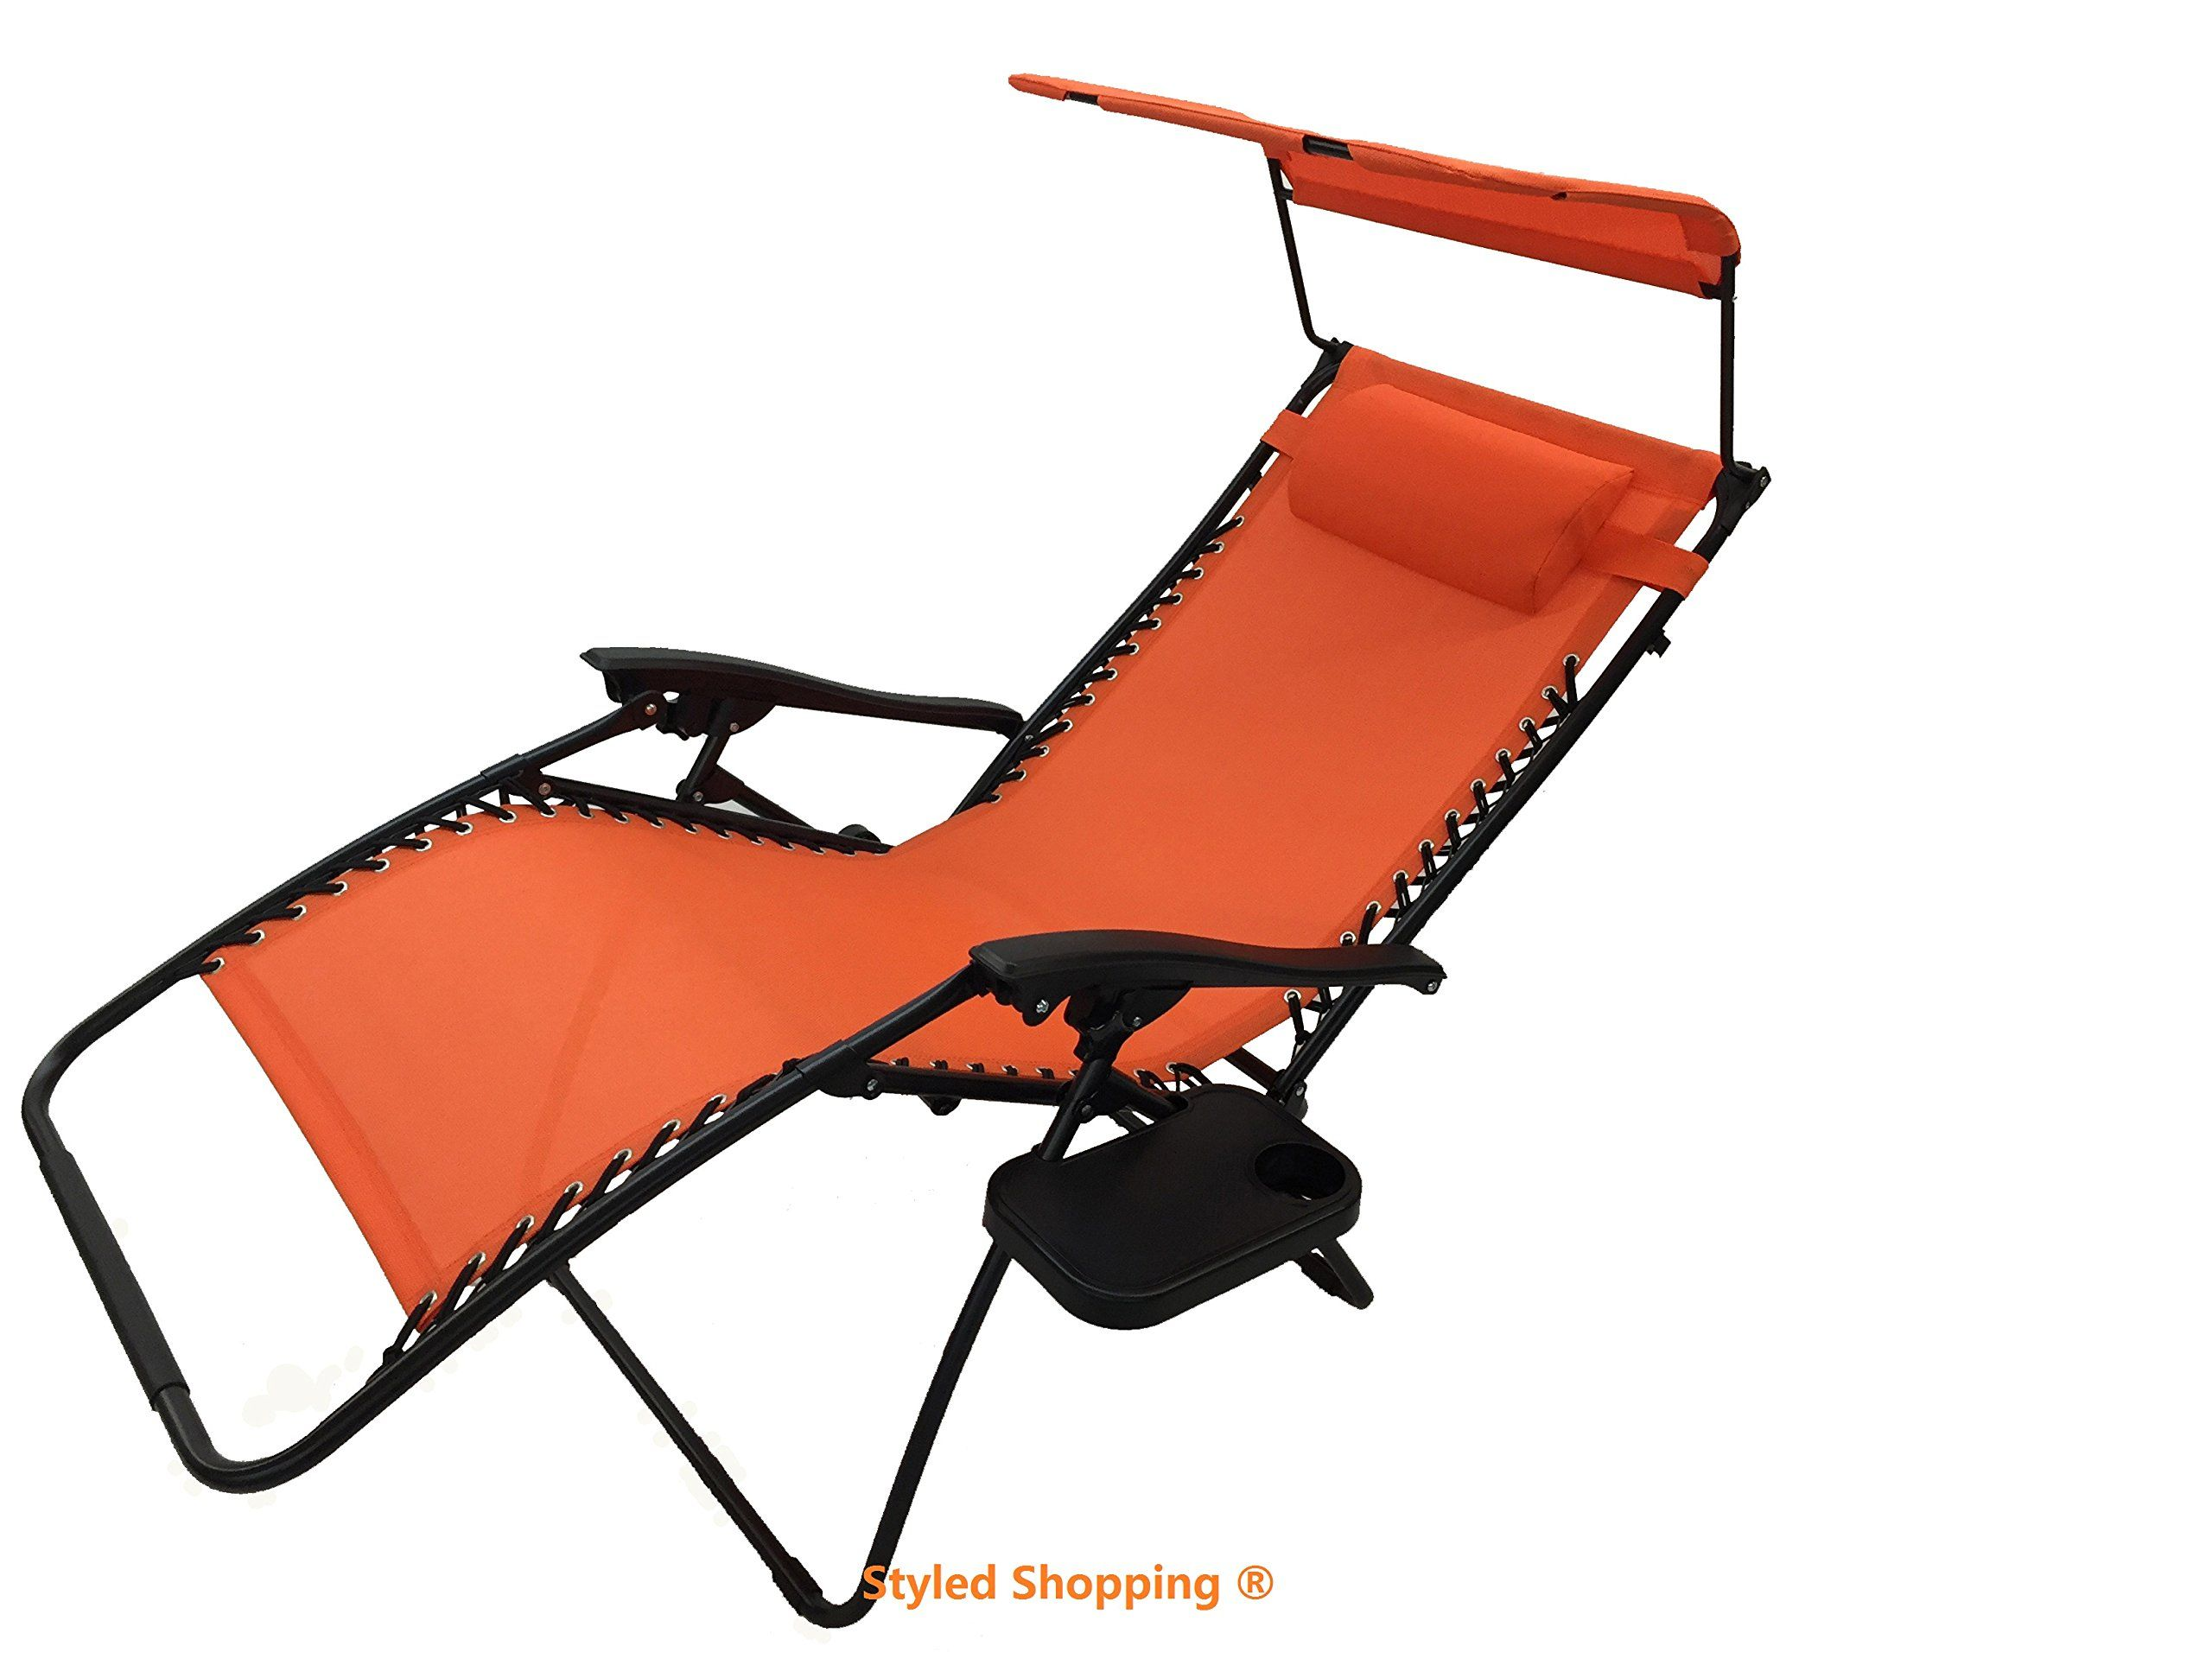 Deluxe Oversized Extra Large Zero Gravity Chair With Canopy Tray